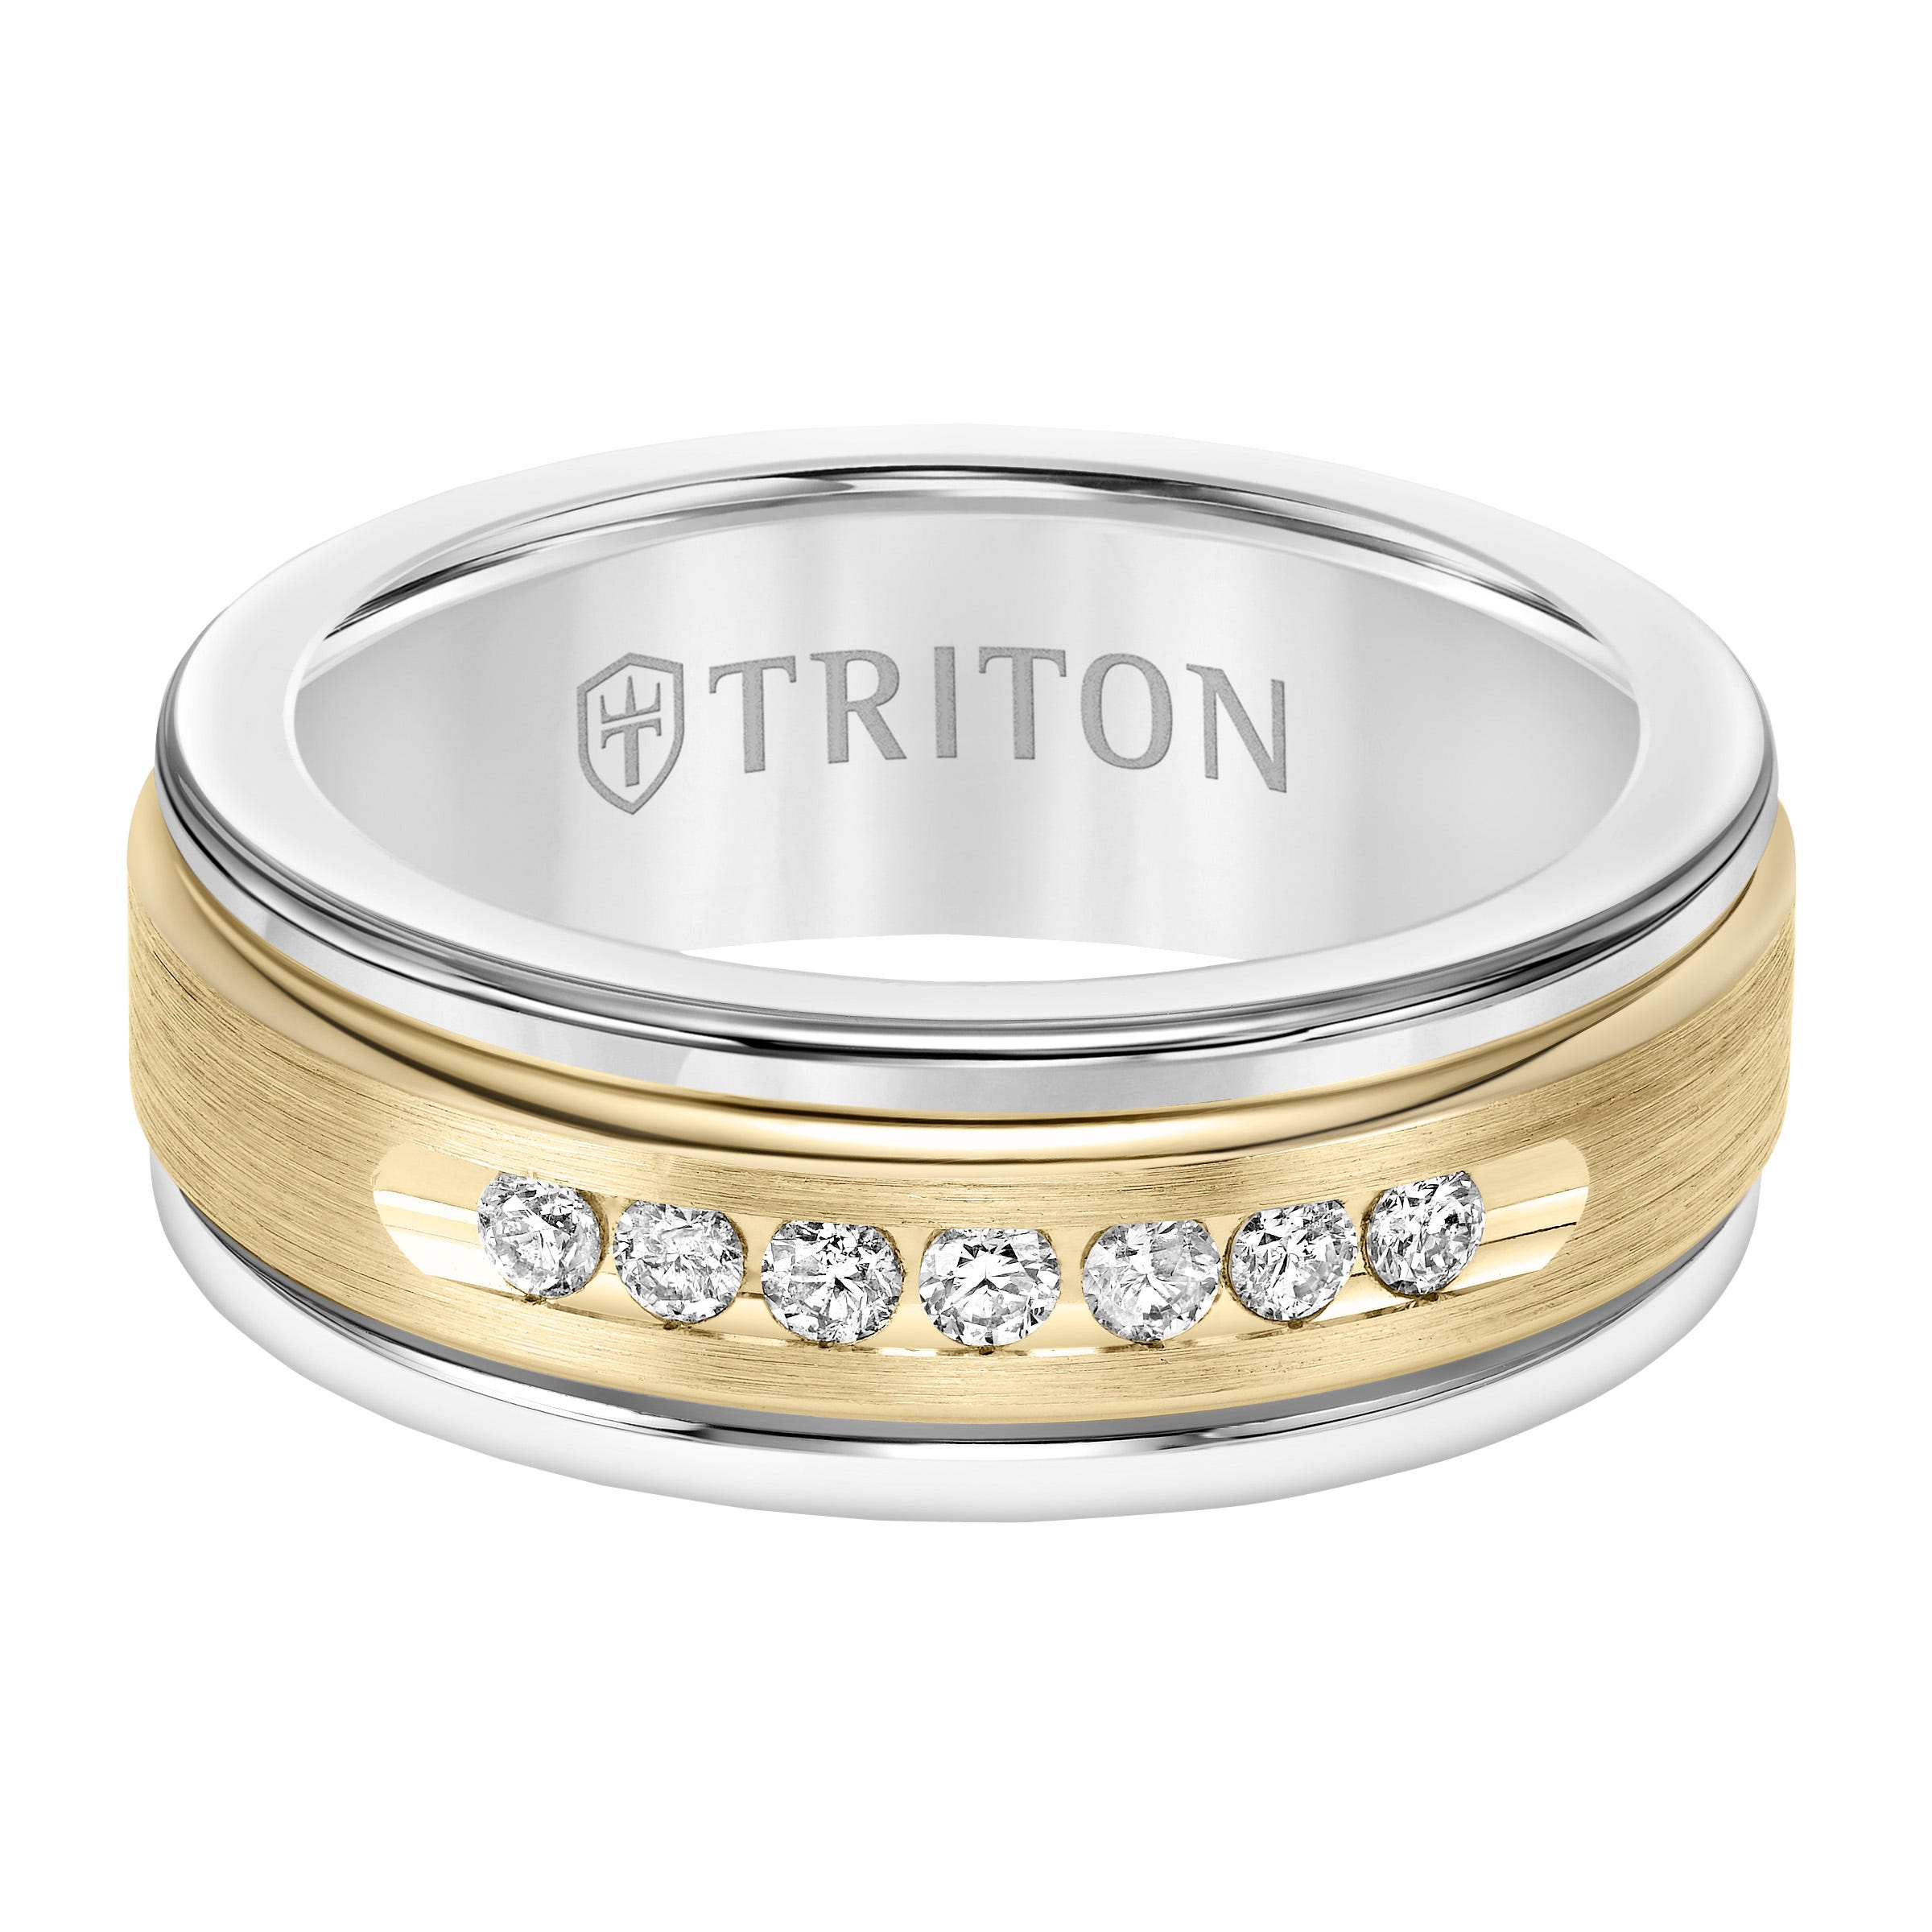 Triton Men's 8mm White Tungsten Carbide and Diamond Wedding Band with 14k Yellow Gold Center